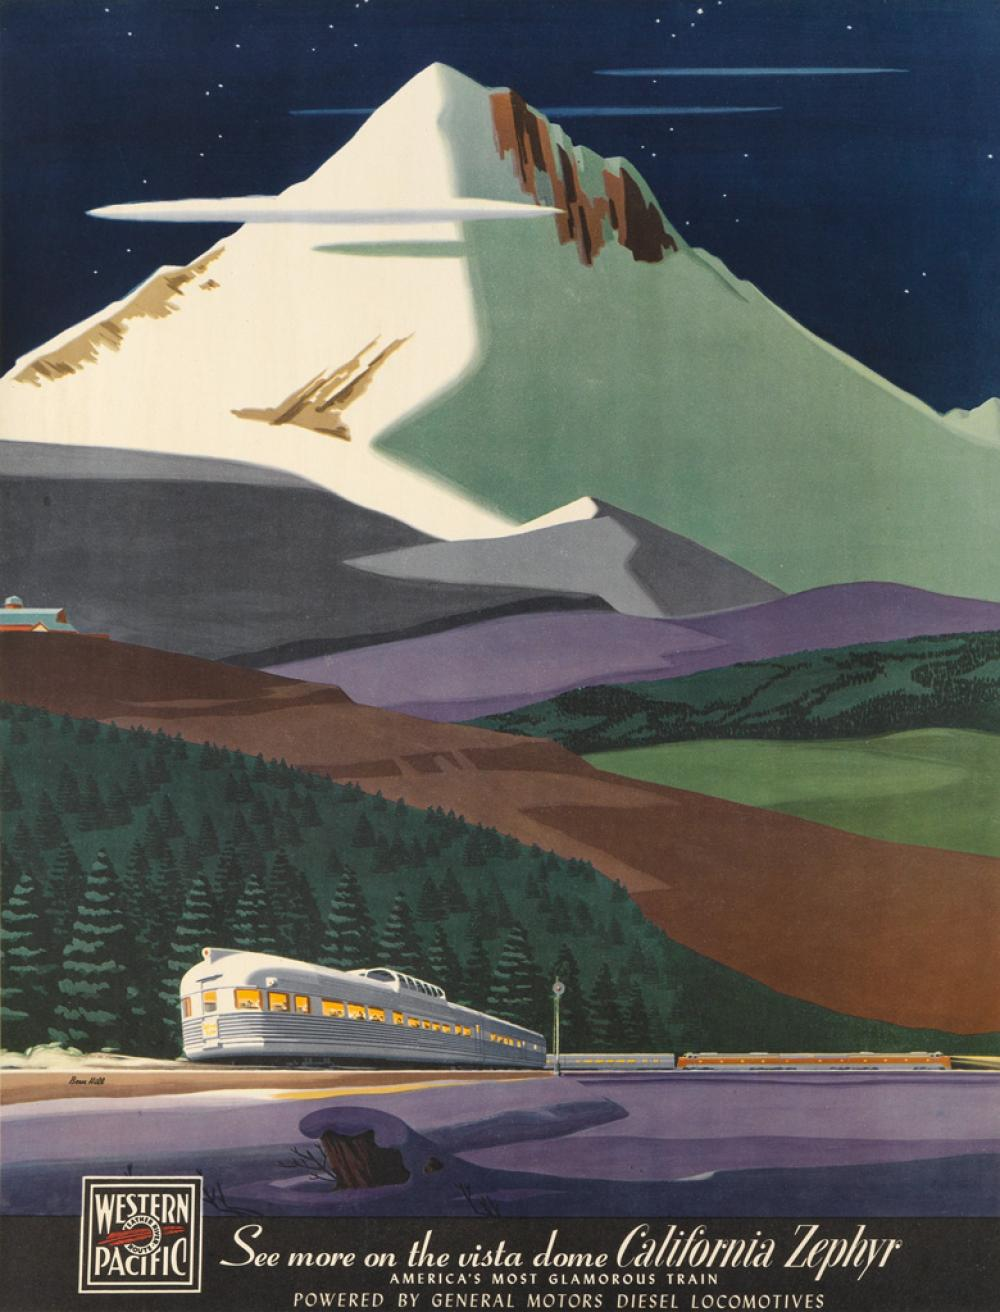 BERN HILL (1911-1977). SEE MORE ON THE VISTA DOME / CALIFORNIA ZEPHYR. Circa 1950s. 23x18 inches, 60x45 cm.